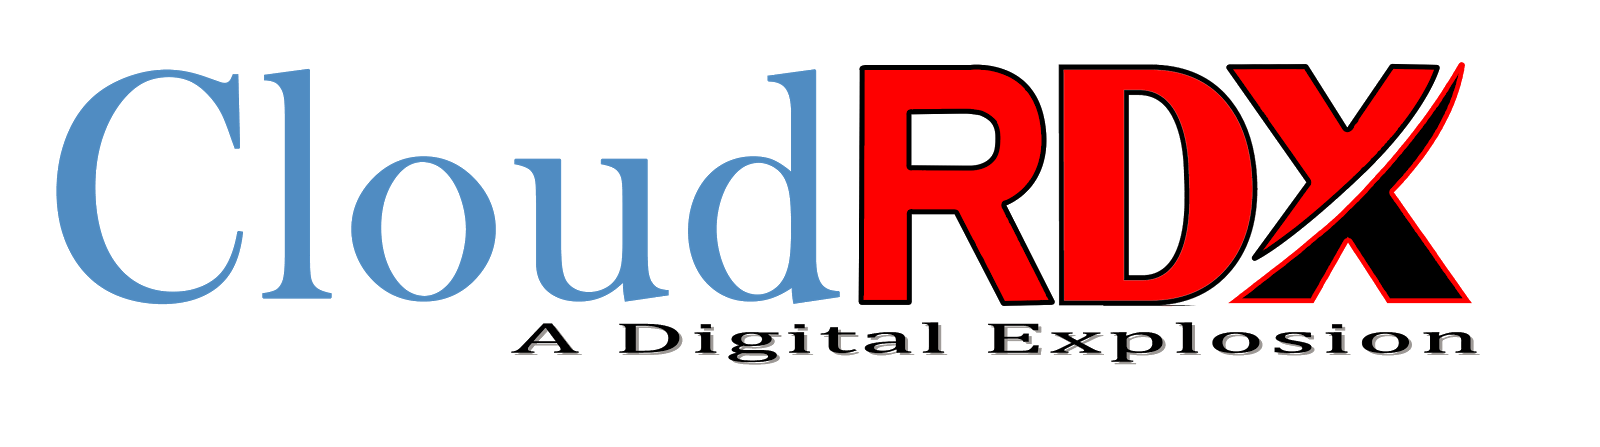 Cloud RDX A Complete Web Solution